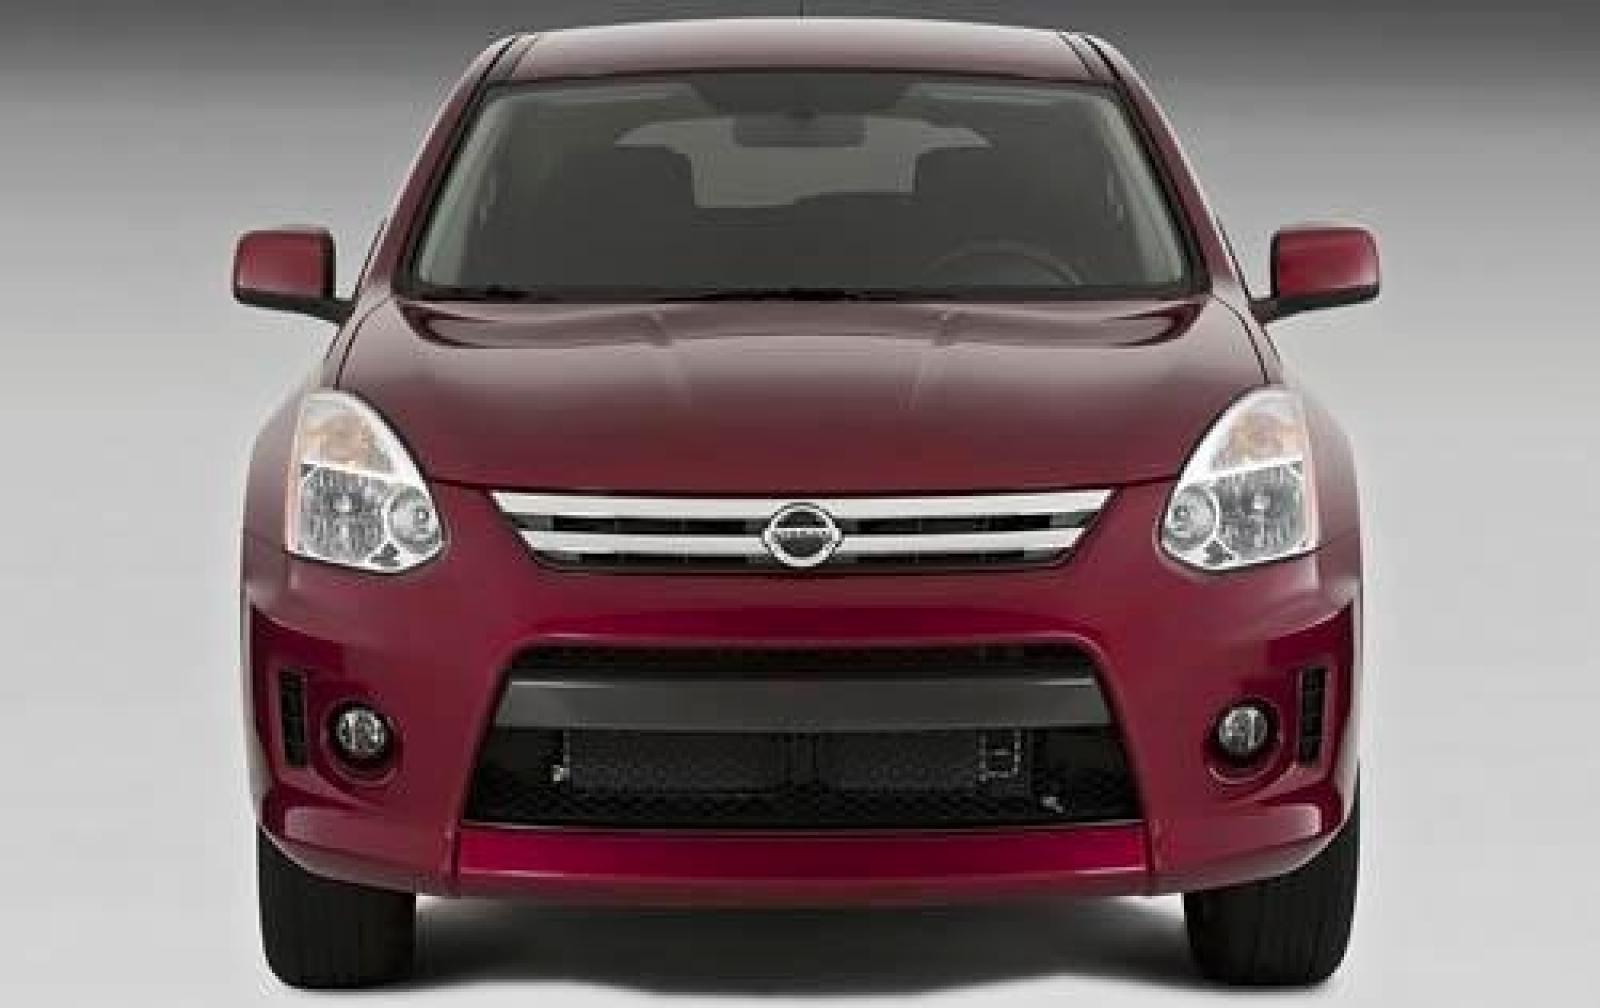 2010 nissan rogue information and photos zombiedrive. Black Bedroom Furniture Sets. Home Design Ideas